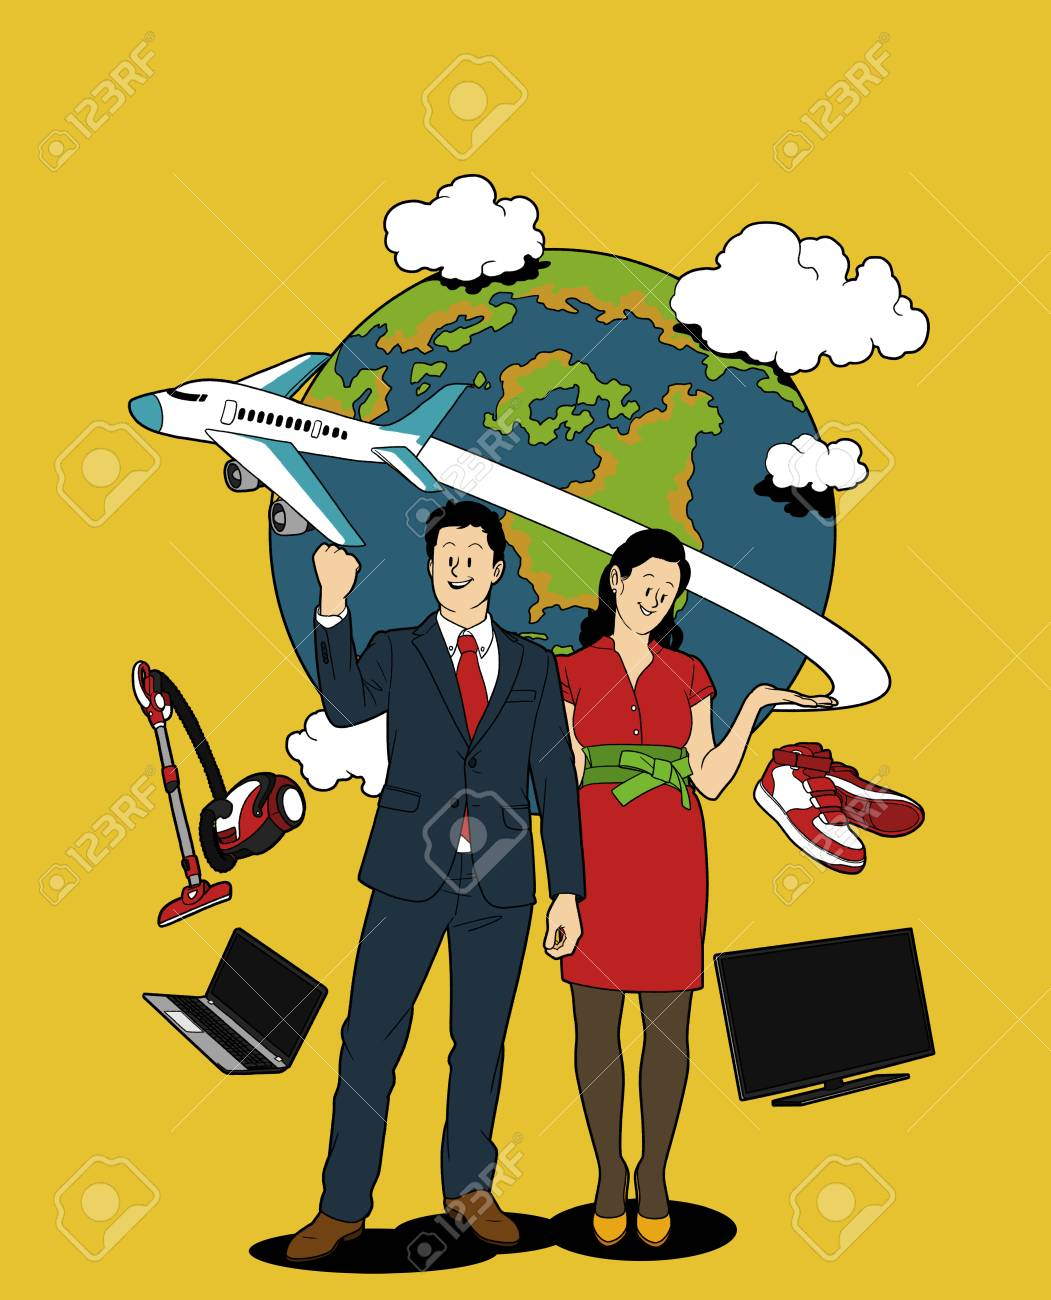 Various service business isolated in yellow illustration - Infomercial,TV